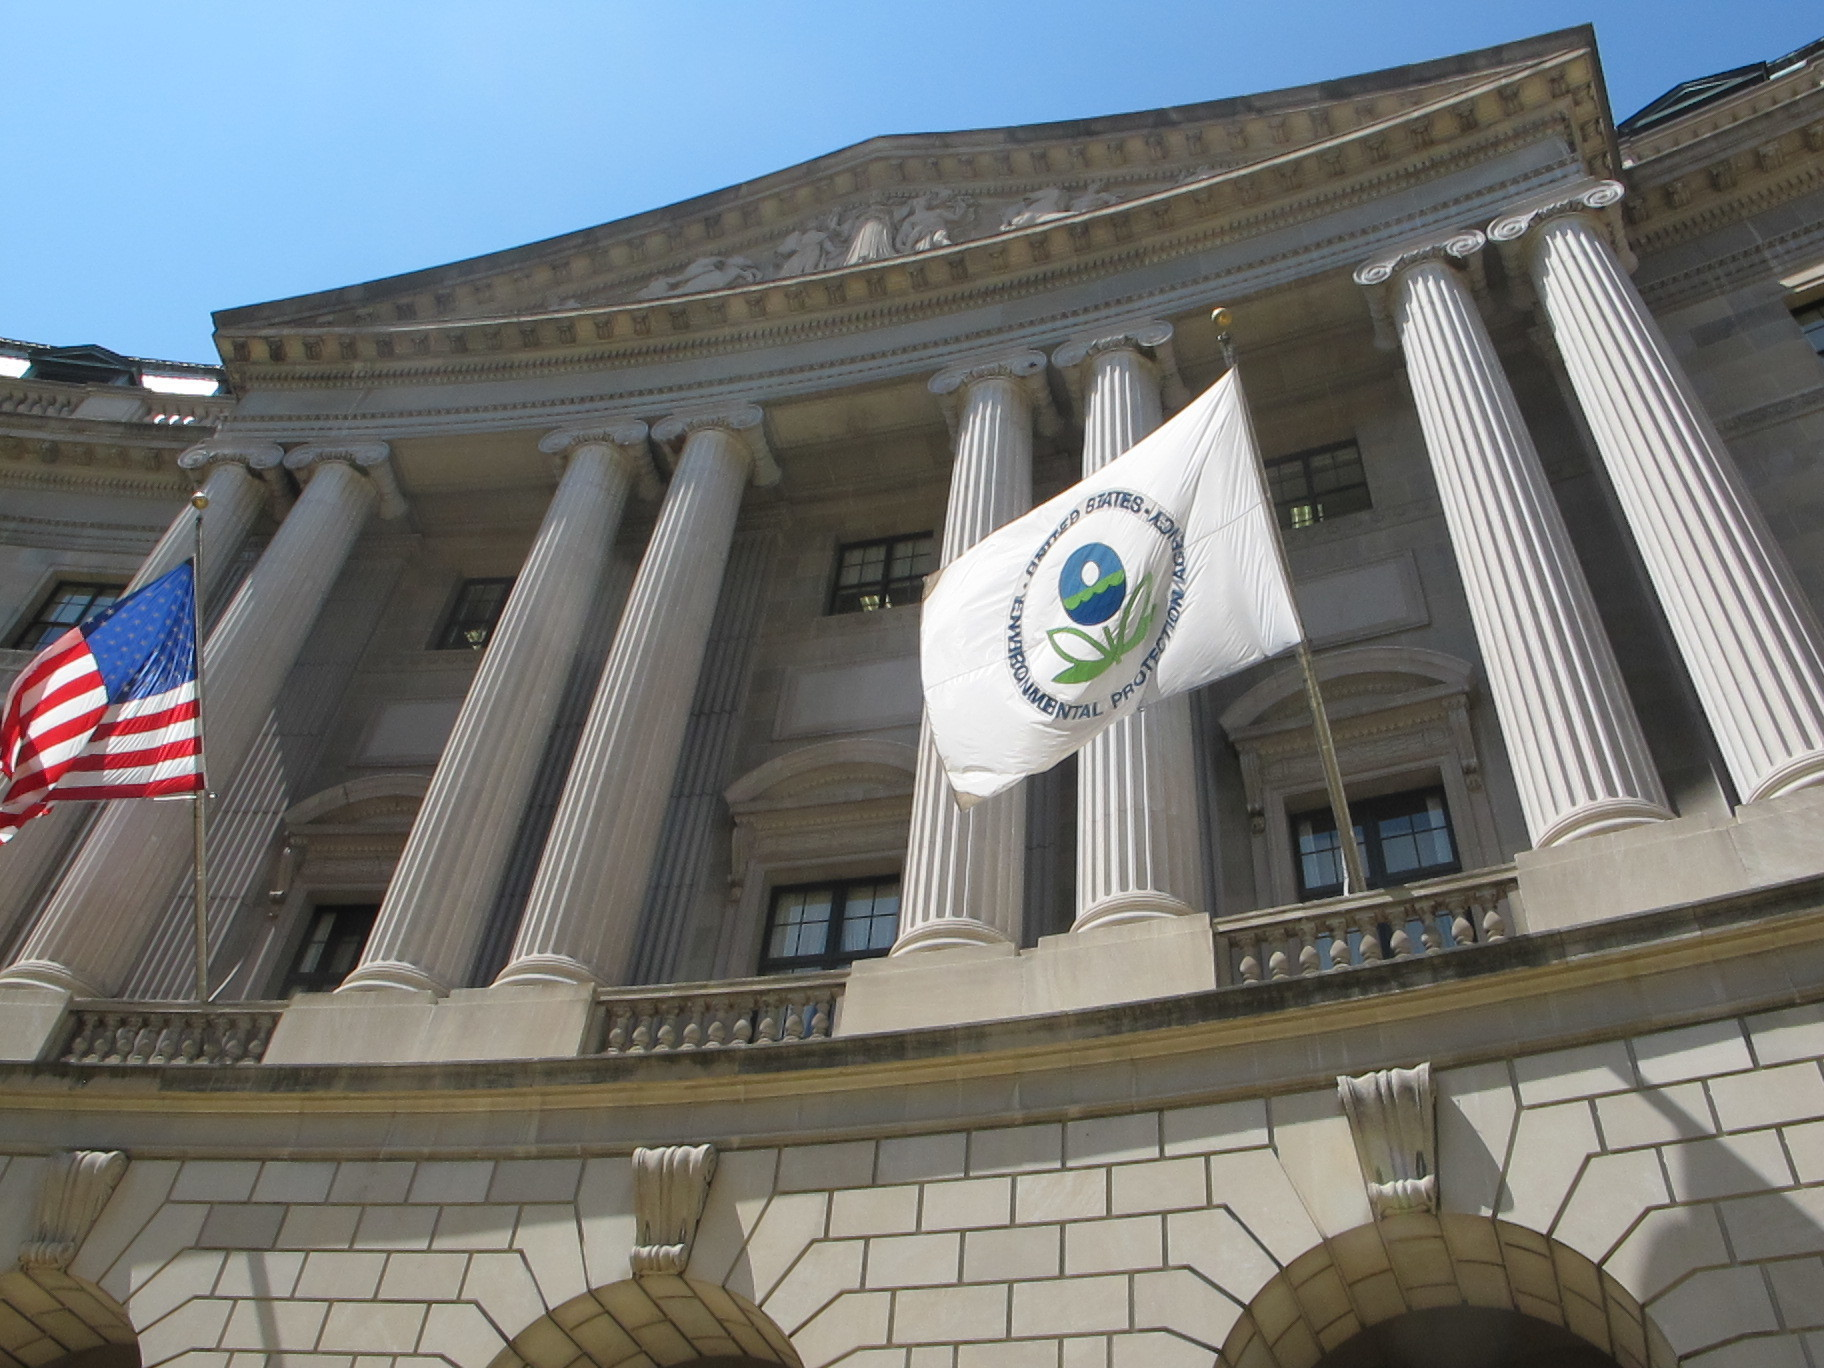 The Environment Protection Agency's headquarters in Washington, D.C. (credit: Courtesy of the Natural Resources Defense Council, via Flickr)